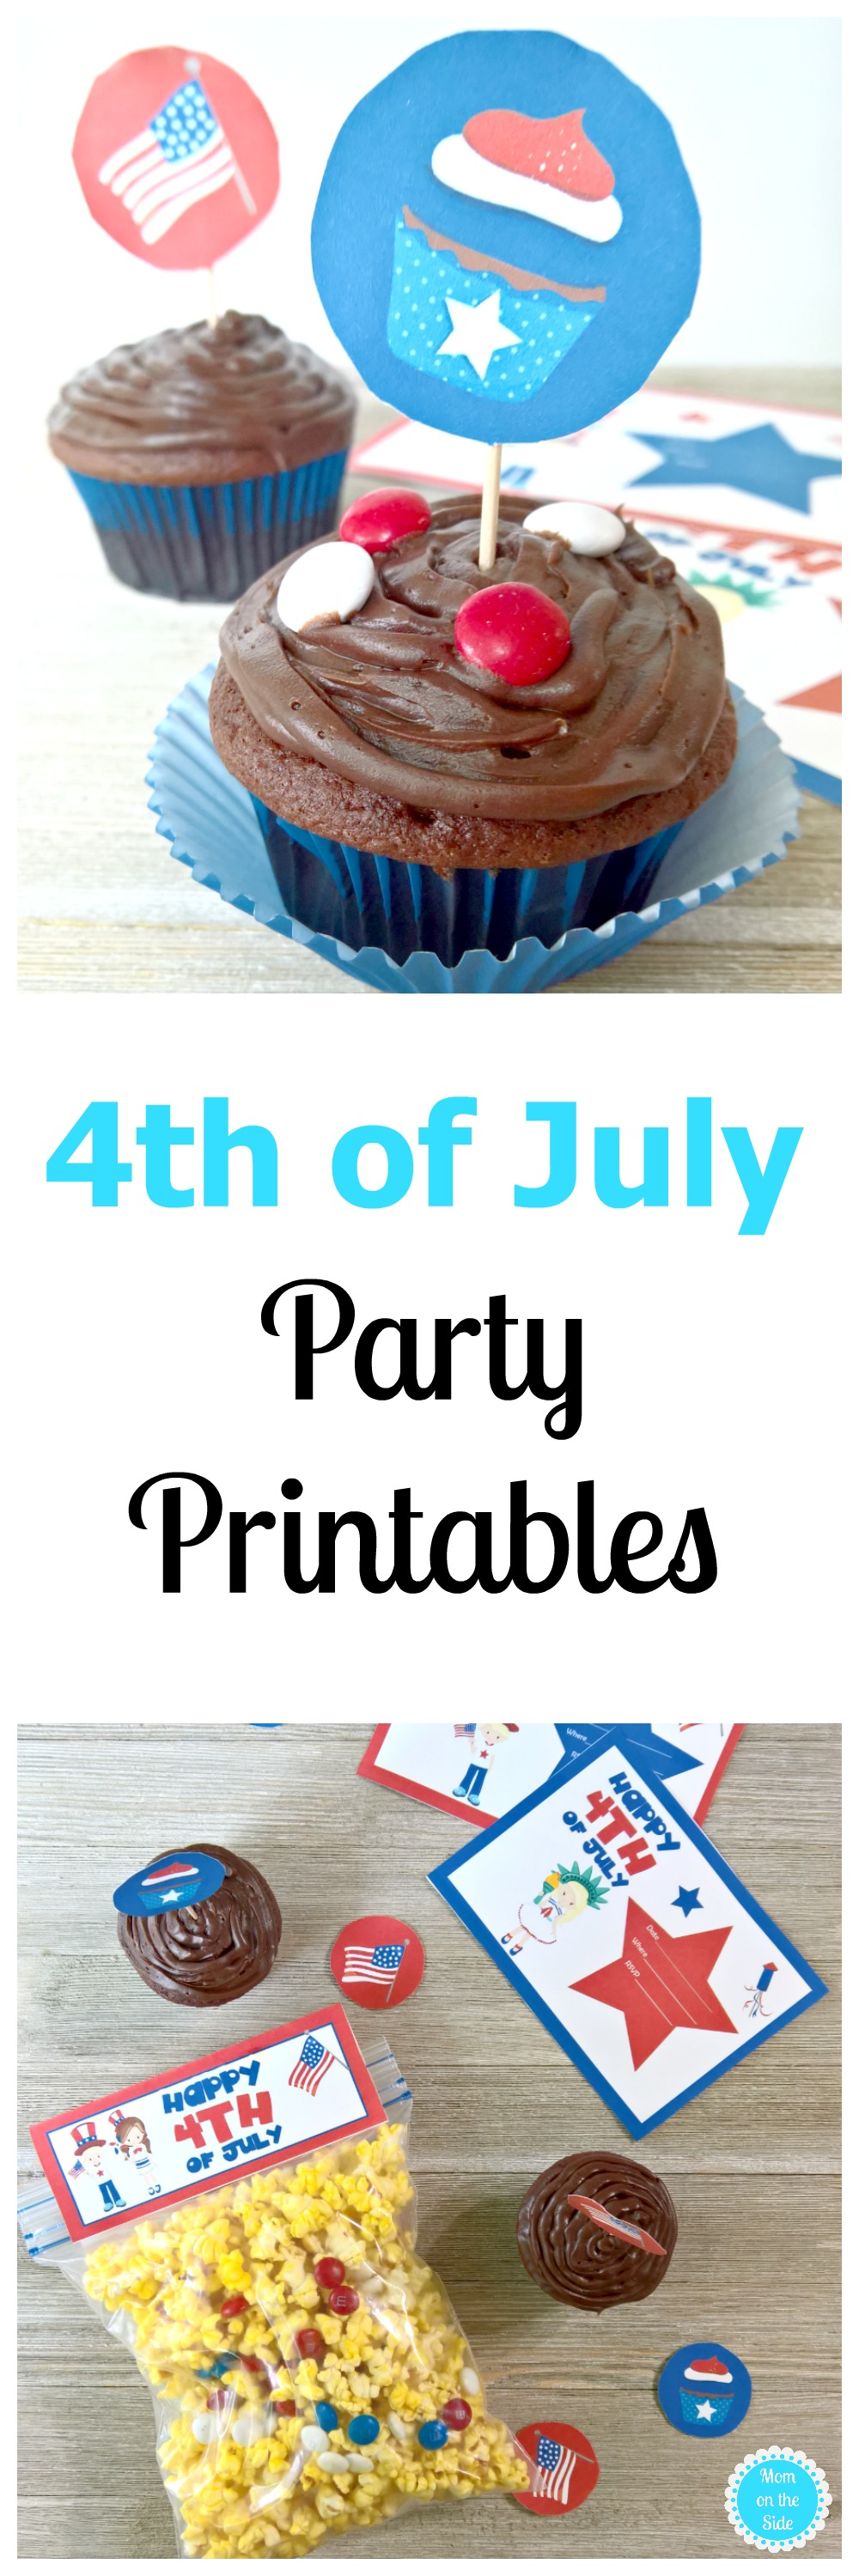 Printables for 4th of July